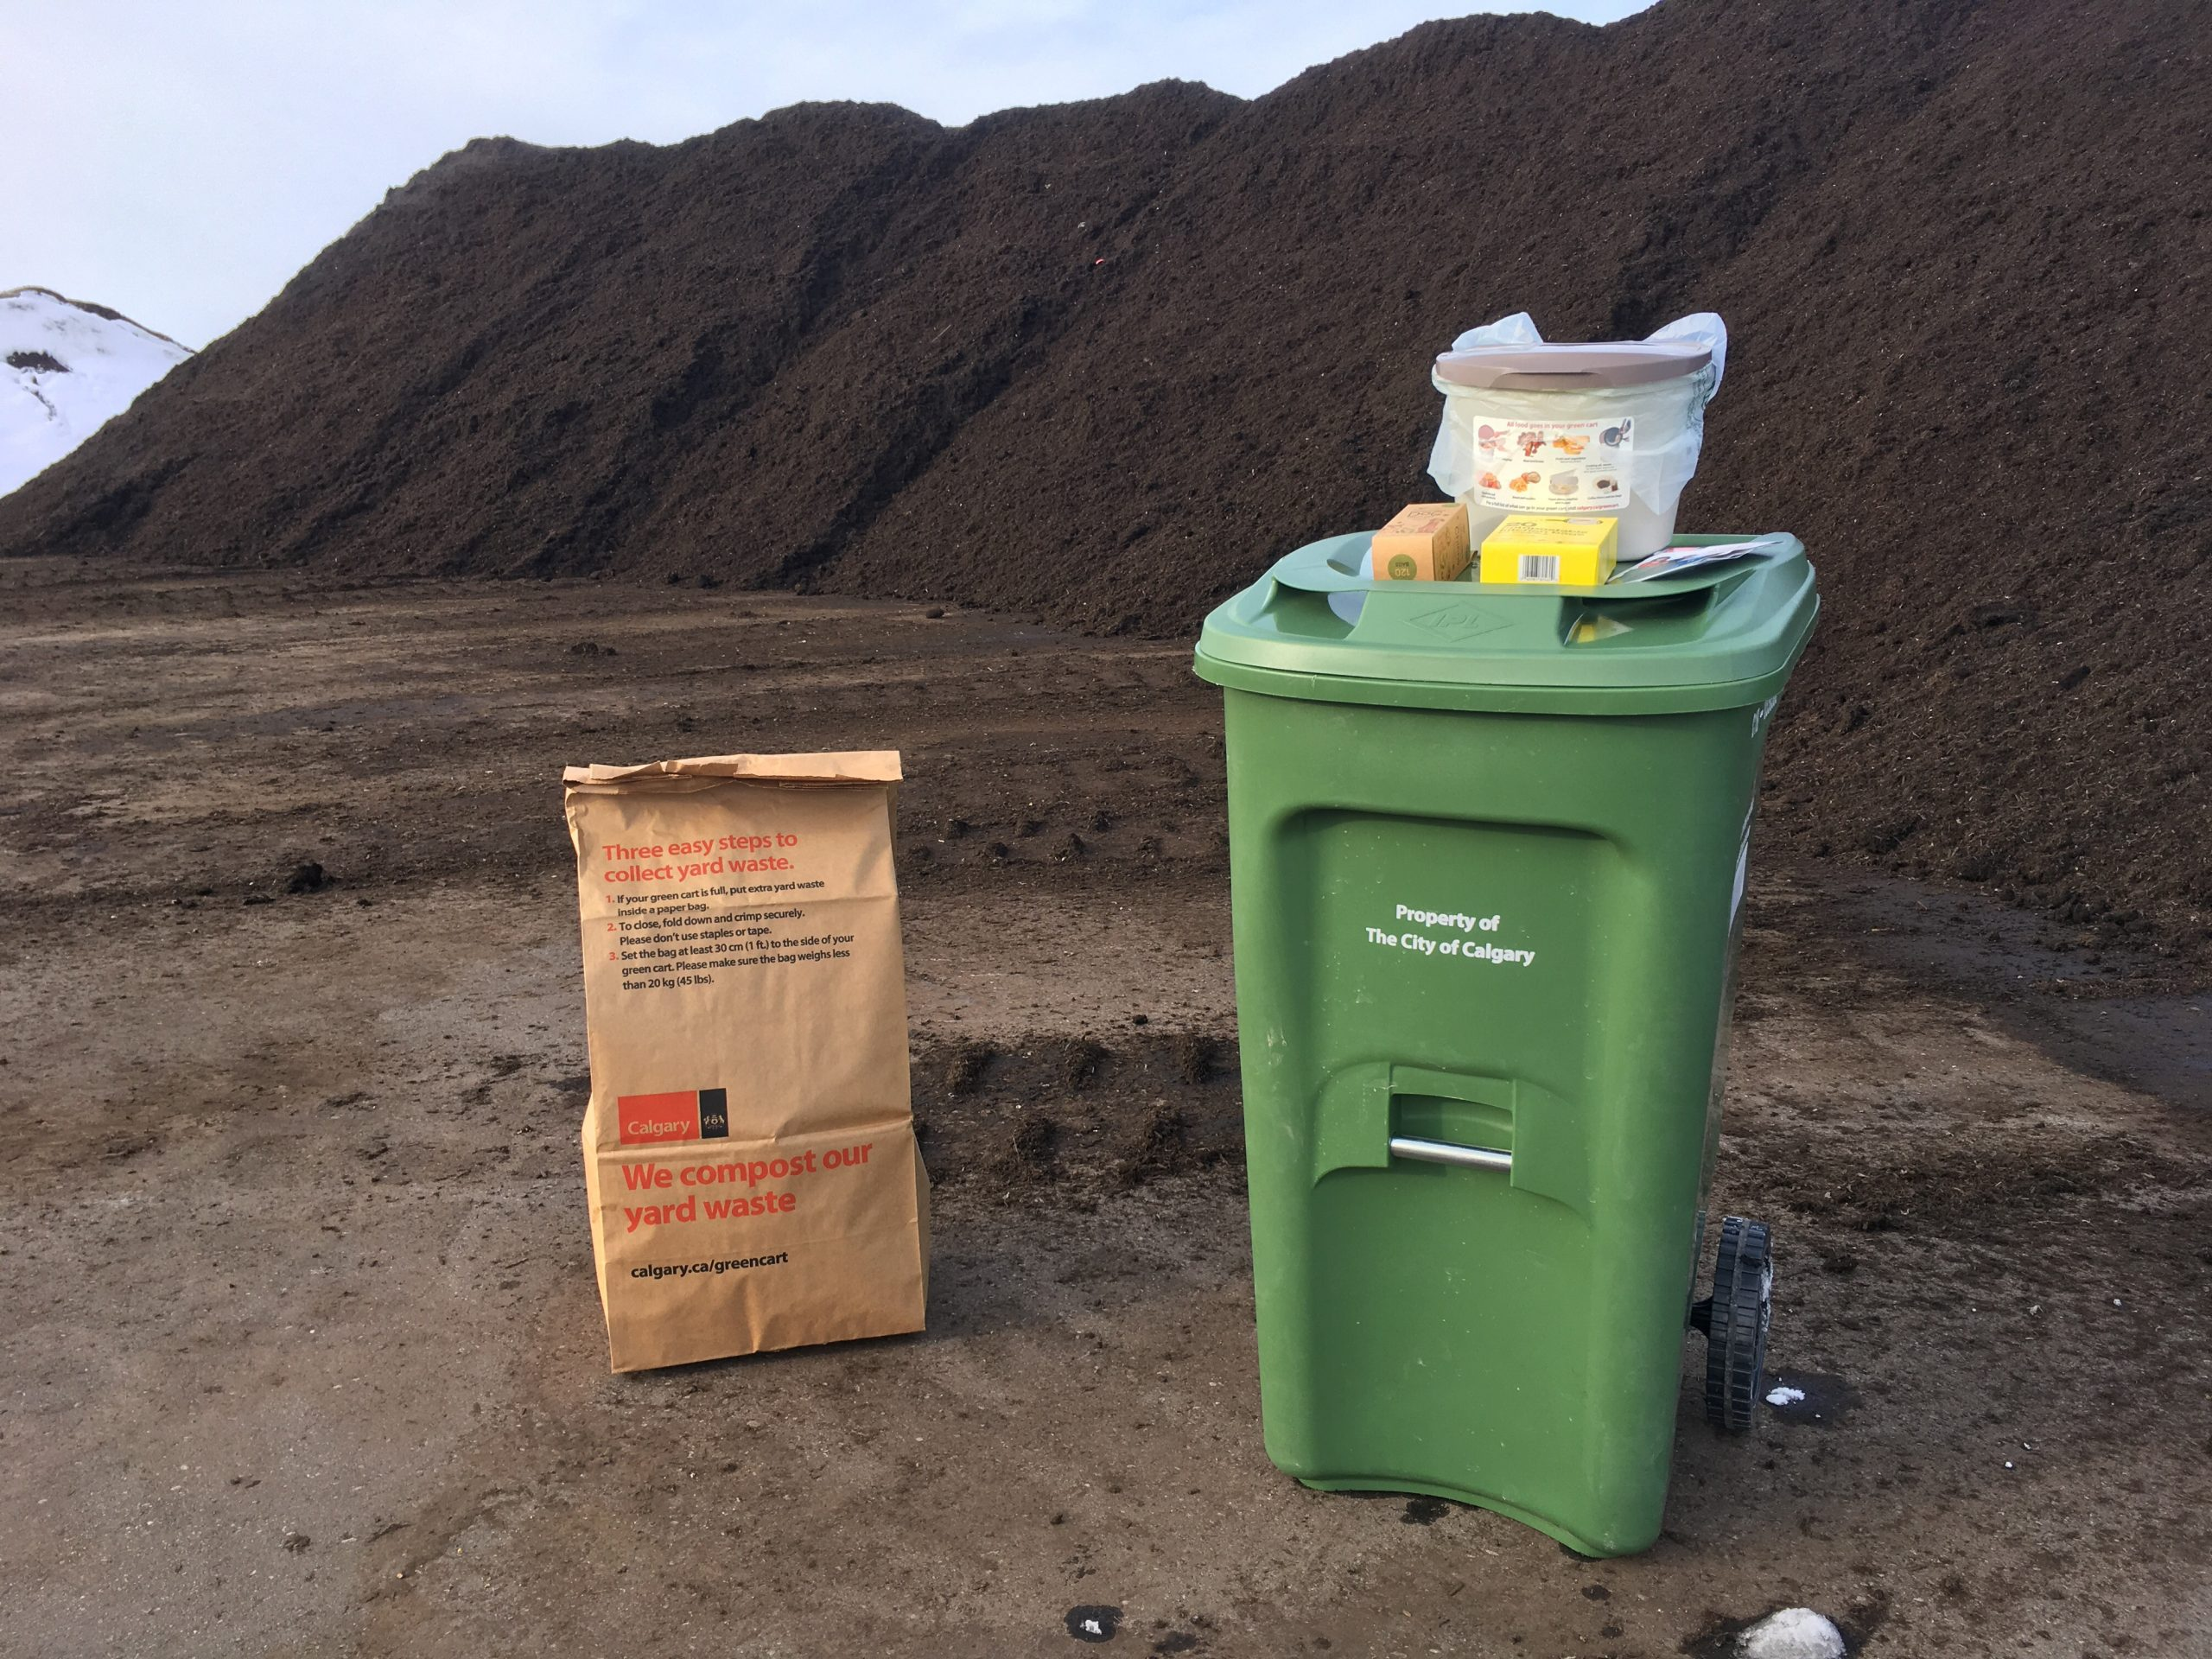 111 million kilograms of waste collected from green carts in one year